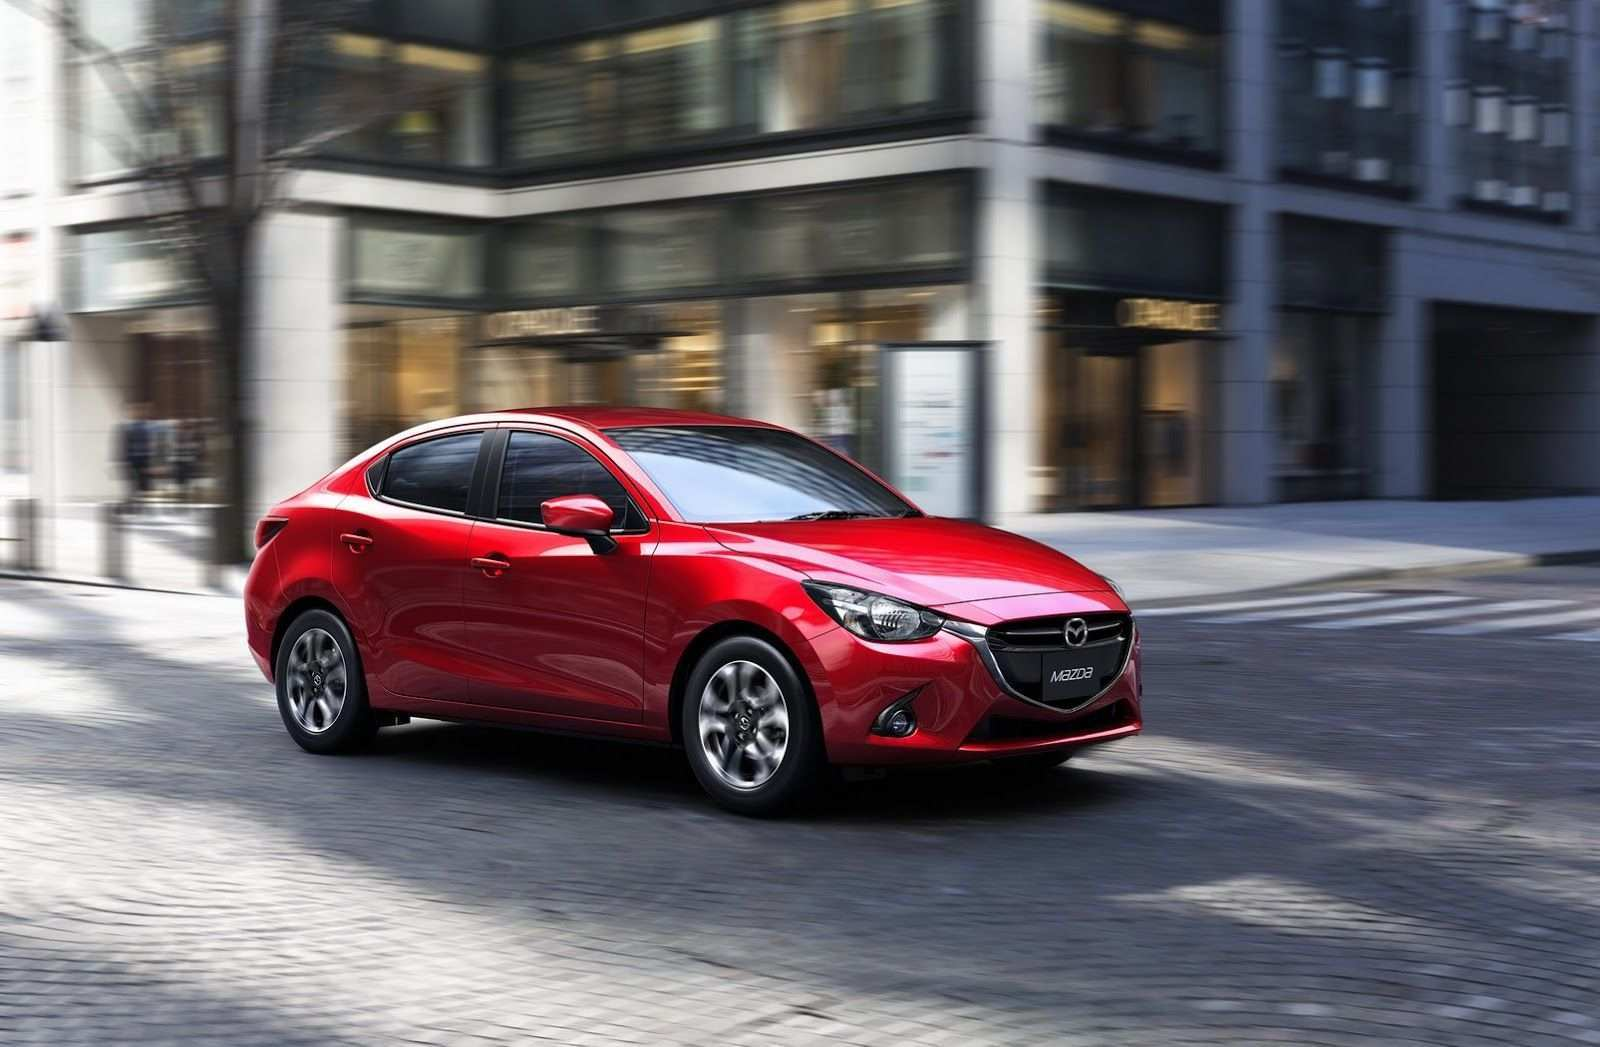 69 Gallery of The Mazda 2 2019 Lebanon Specs And Review Exterior and Interior by The Mazda 2 2019 Lebanon Specs And Review